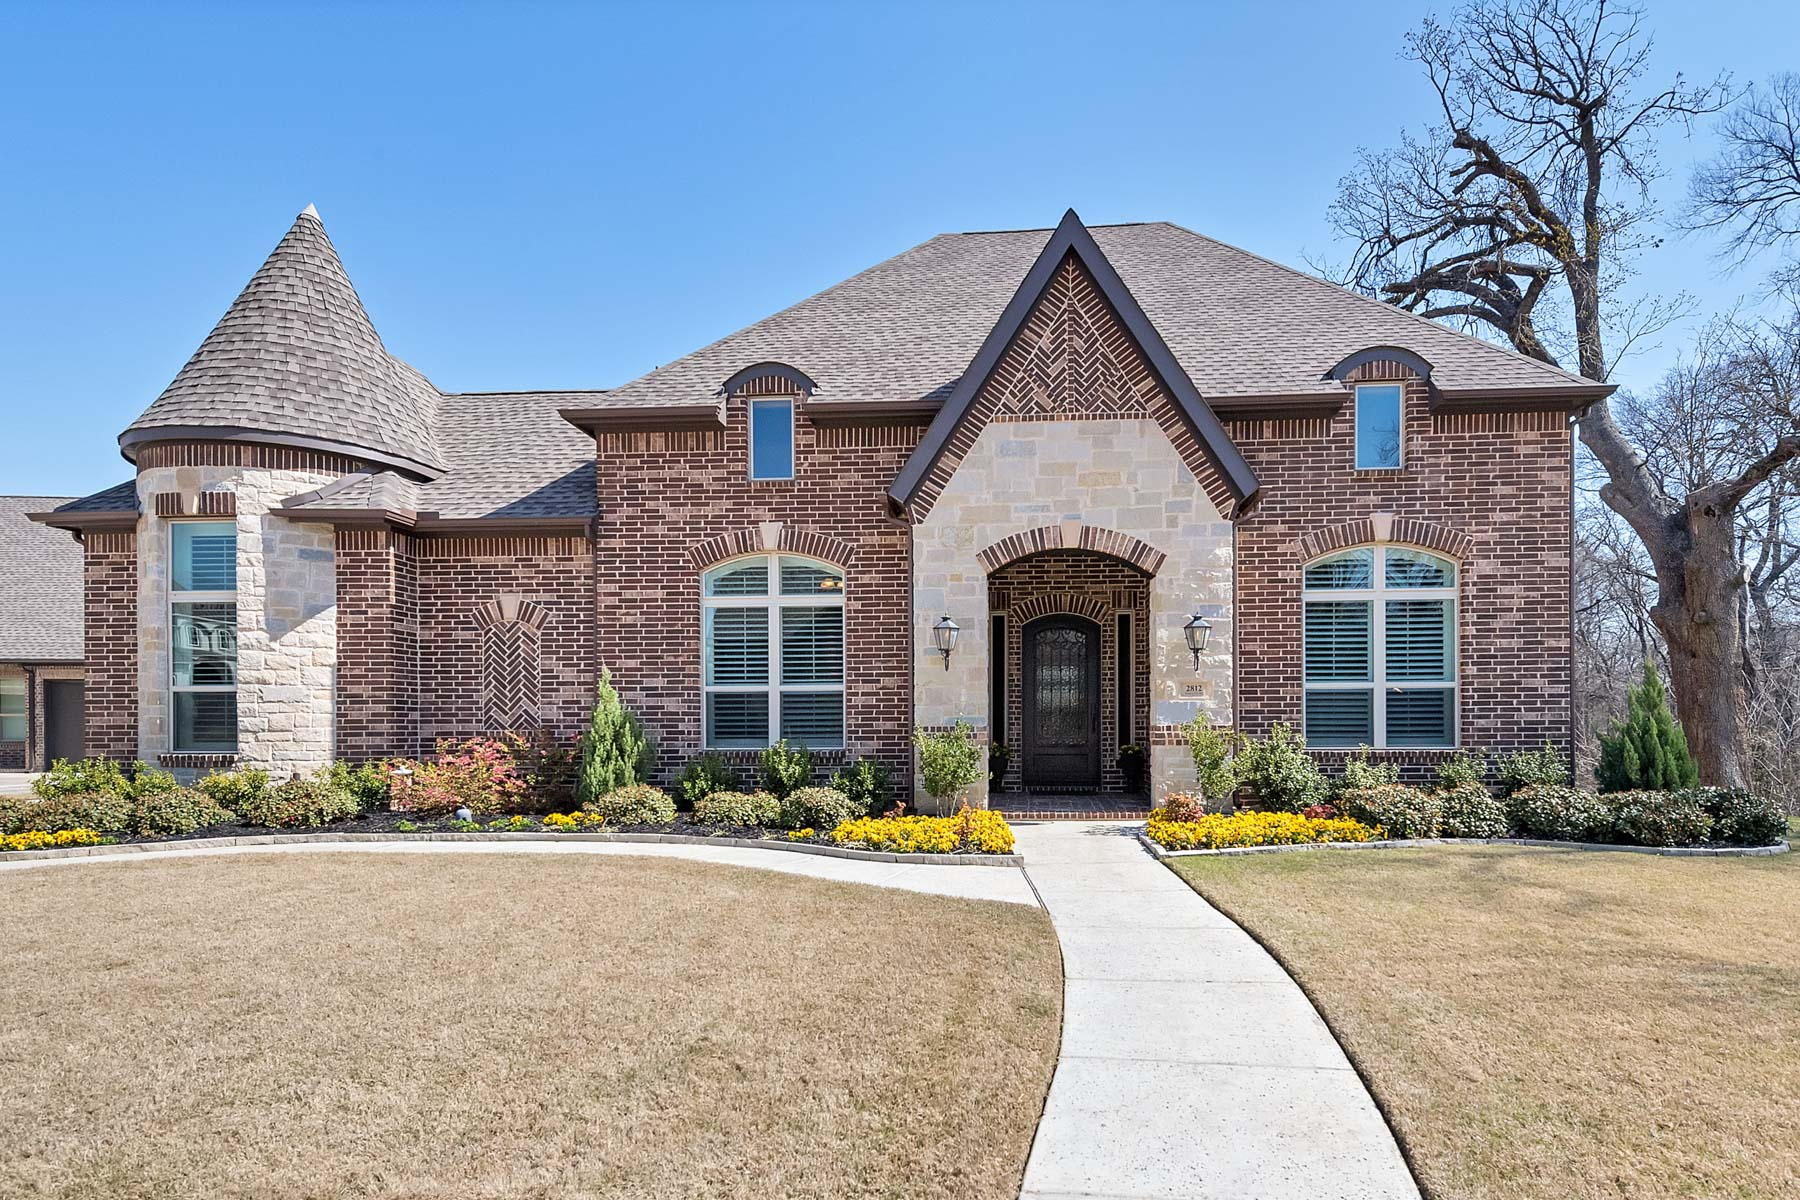 Single Family Home for Sale at Impeccable One Story In The Preserve. Barely Two Years Old with every upgrade. 2812 Winding Path Way Flower Mound, Texas 75022 United States